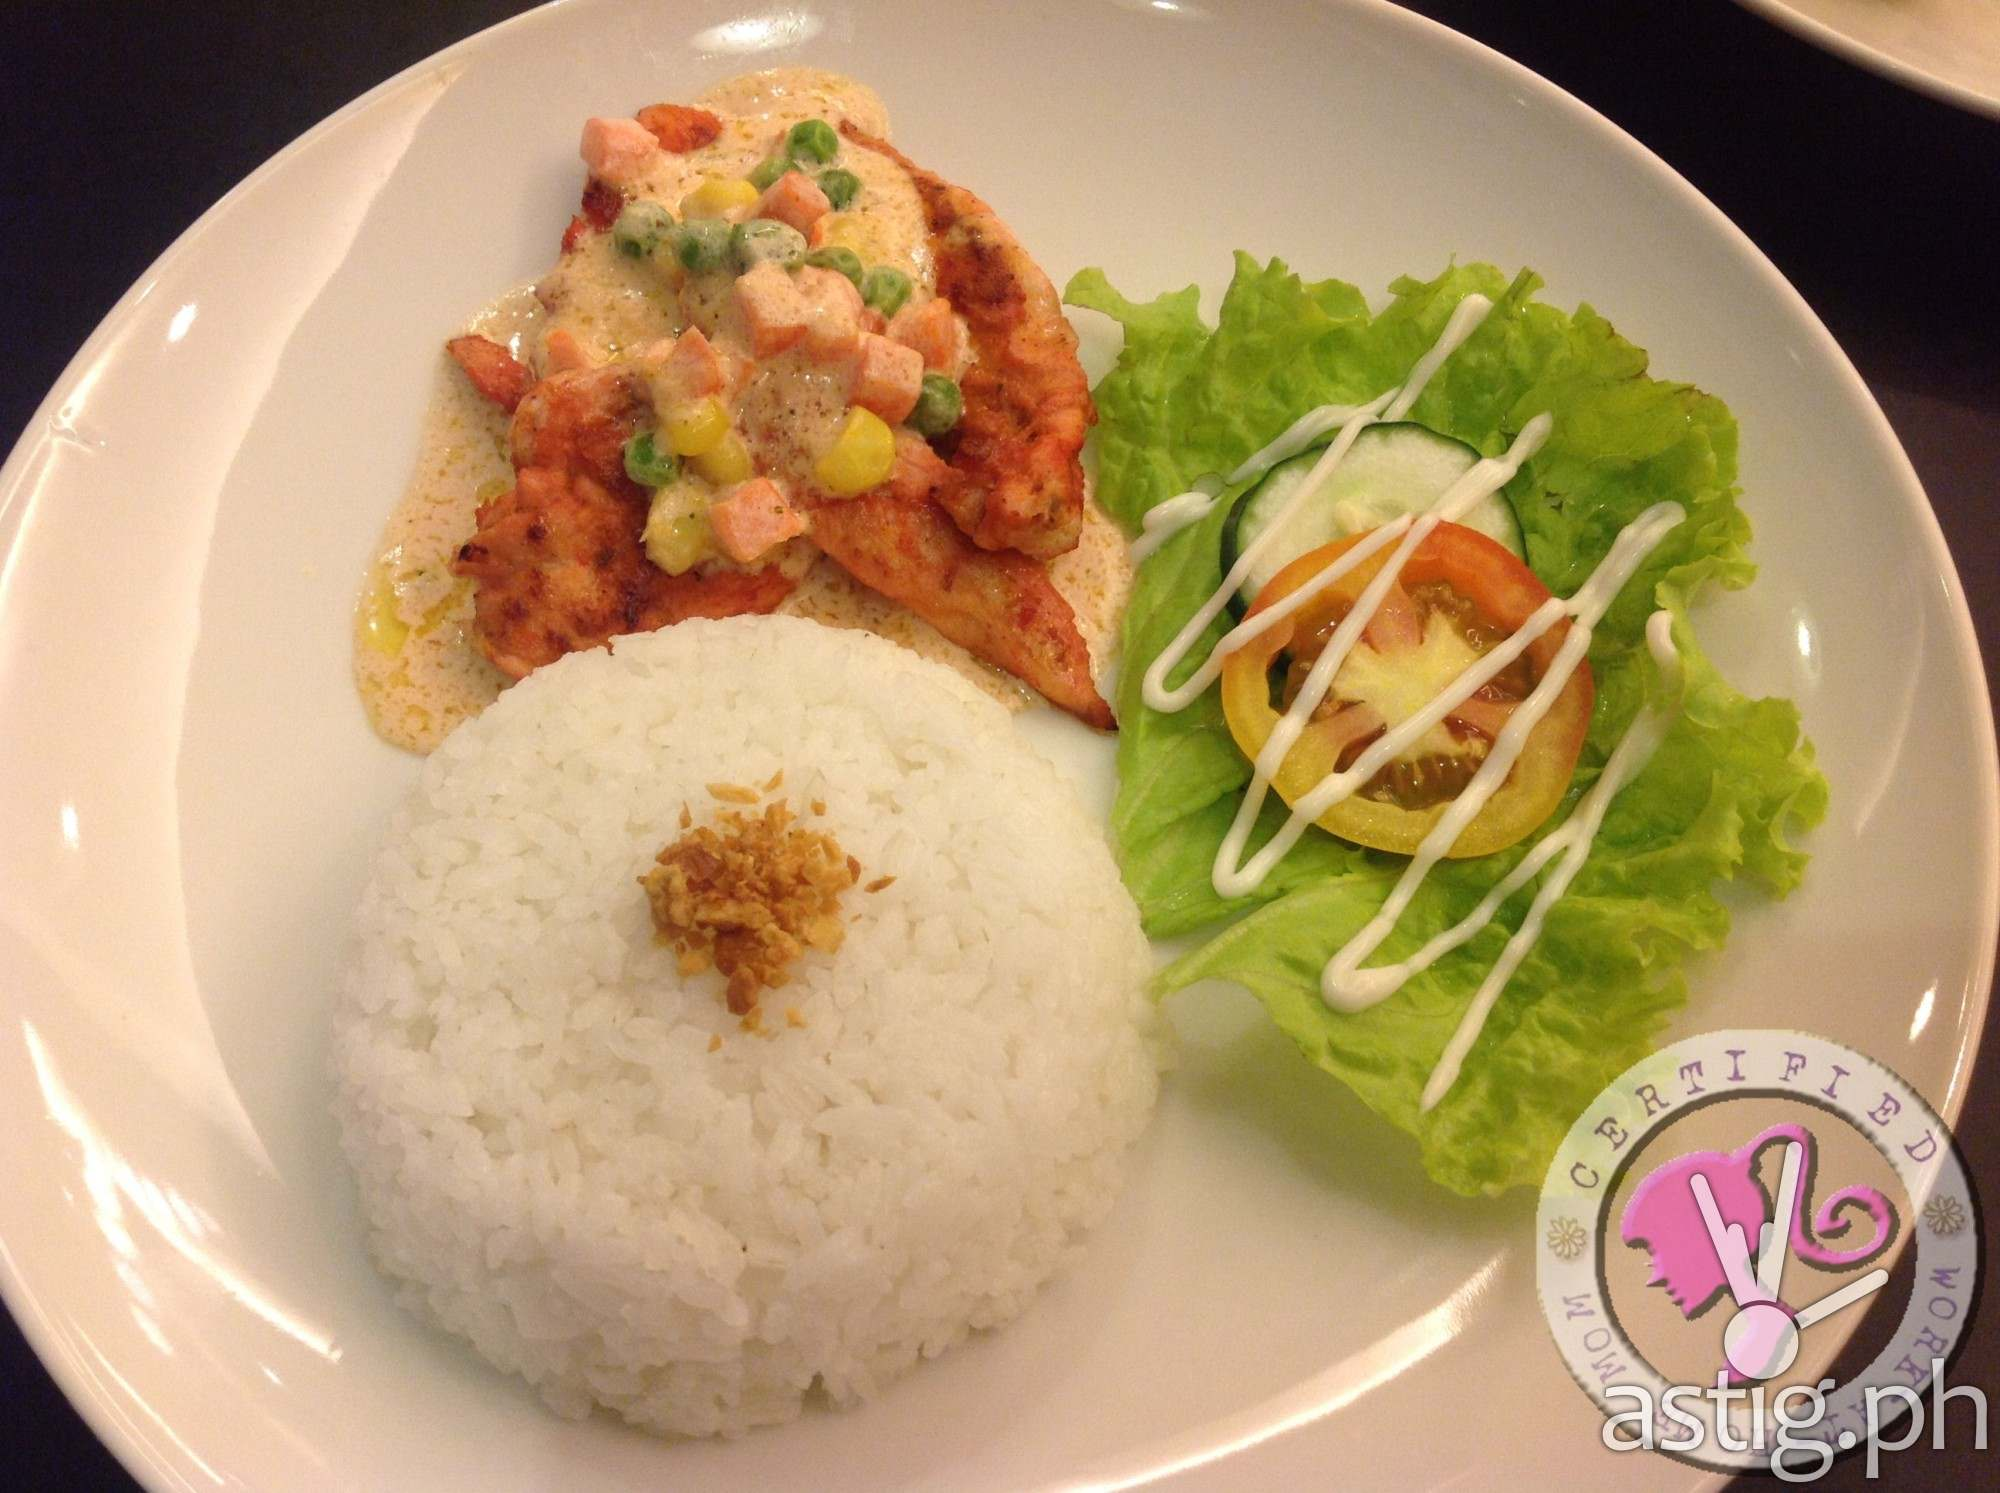 Qaldi Spicy Chicken with Special Qaldi Sauce